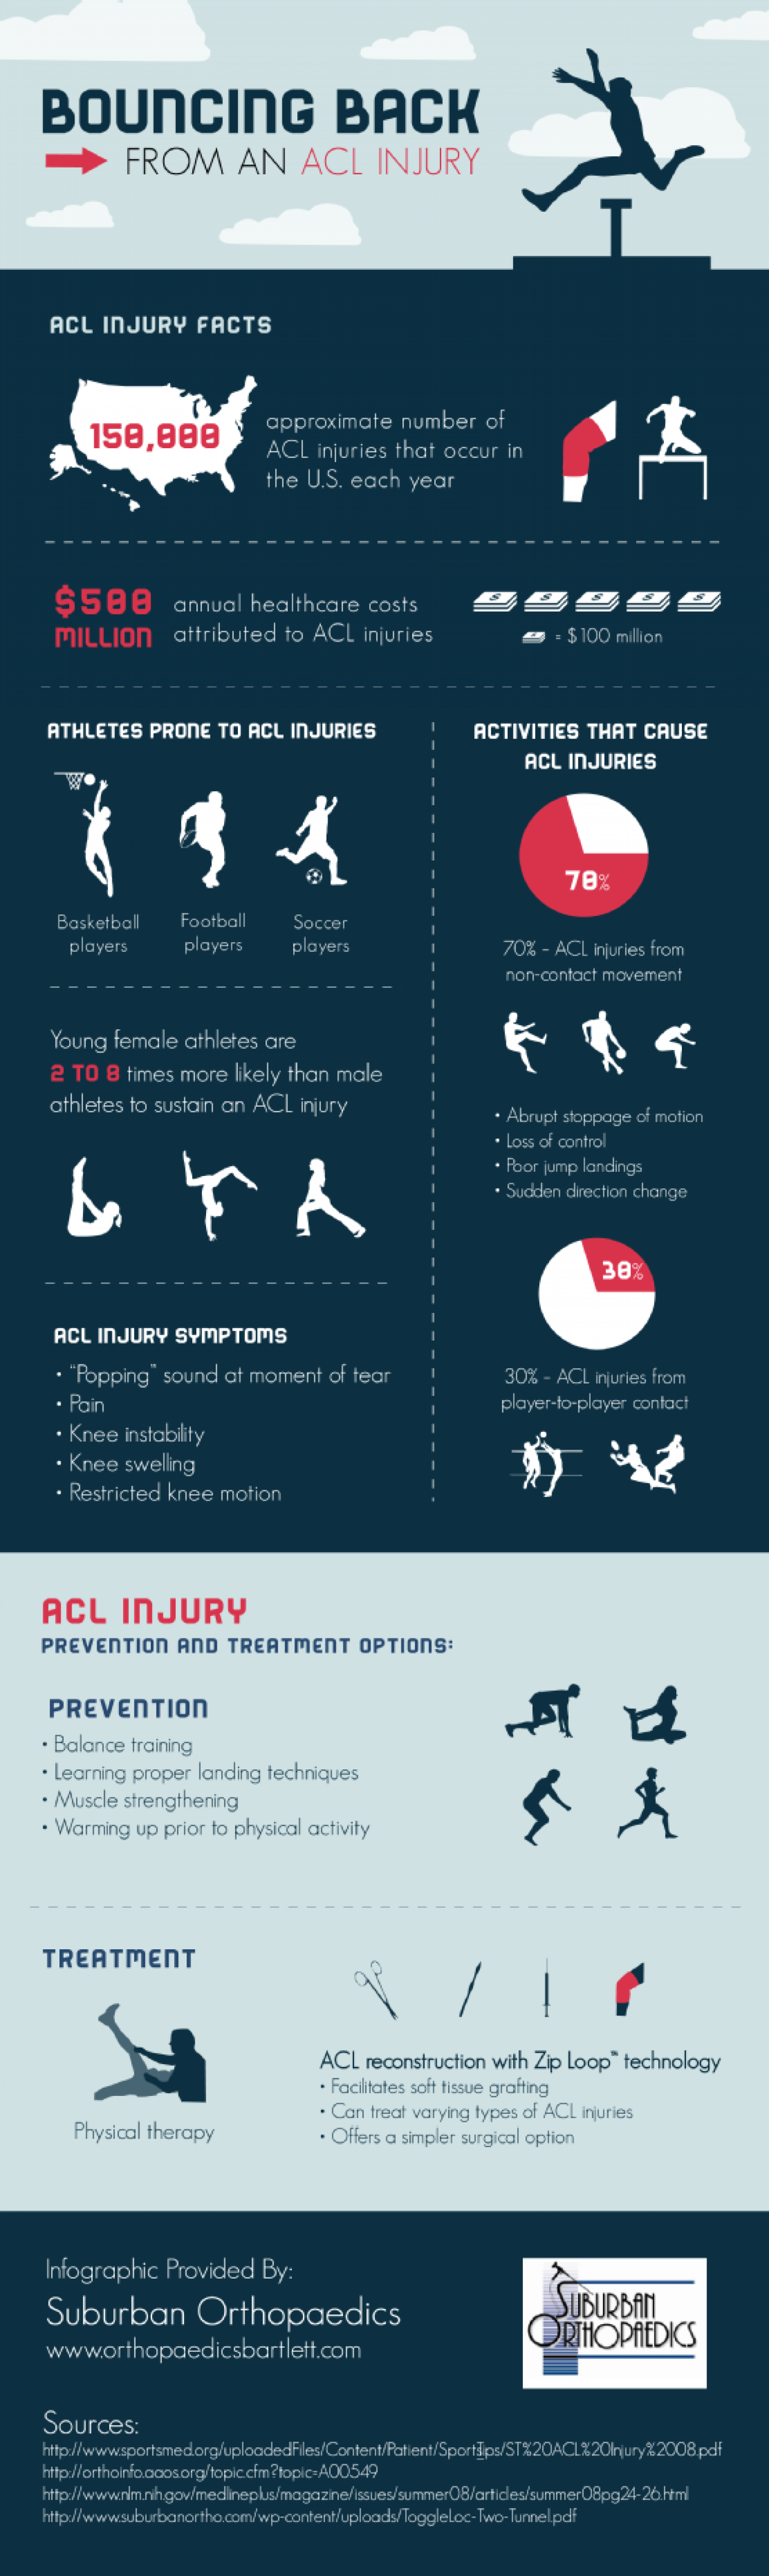 Bouncing Back from an ACL Injury Infographic